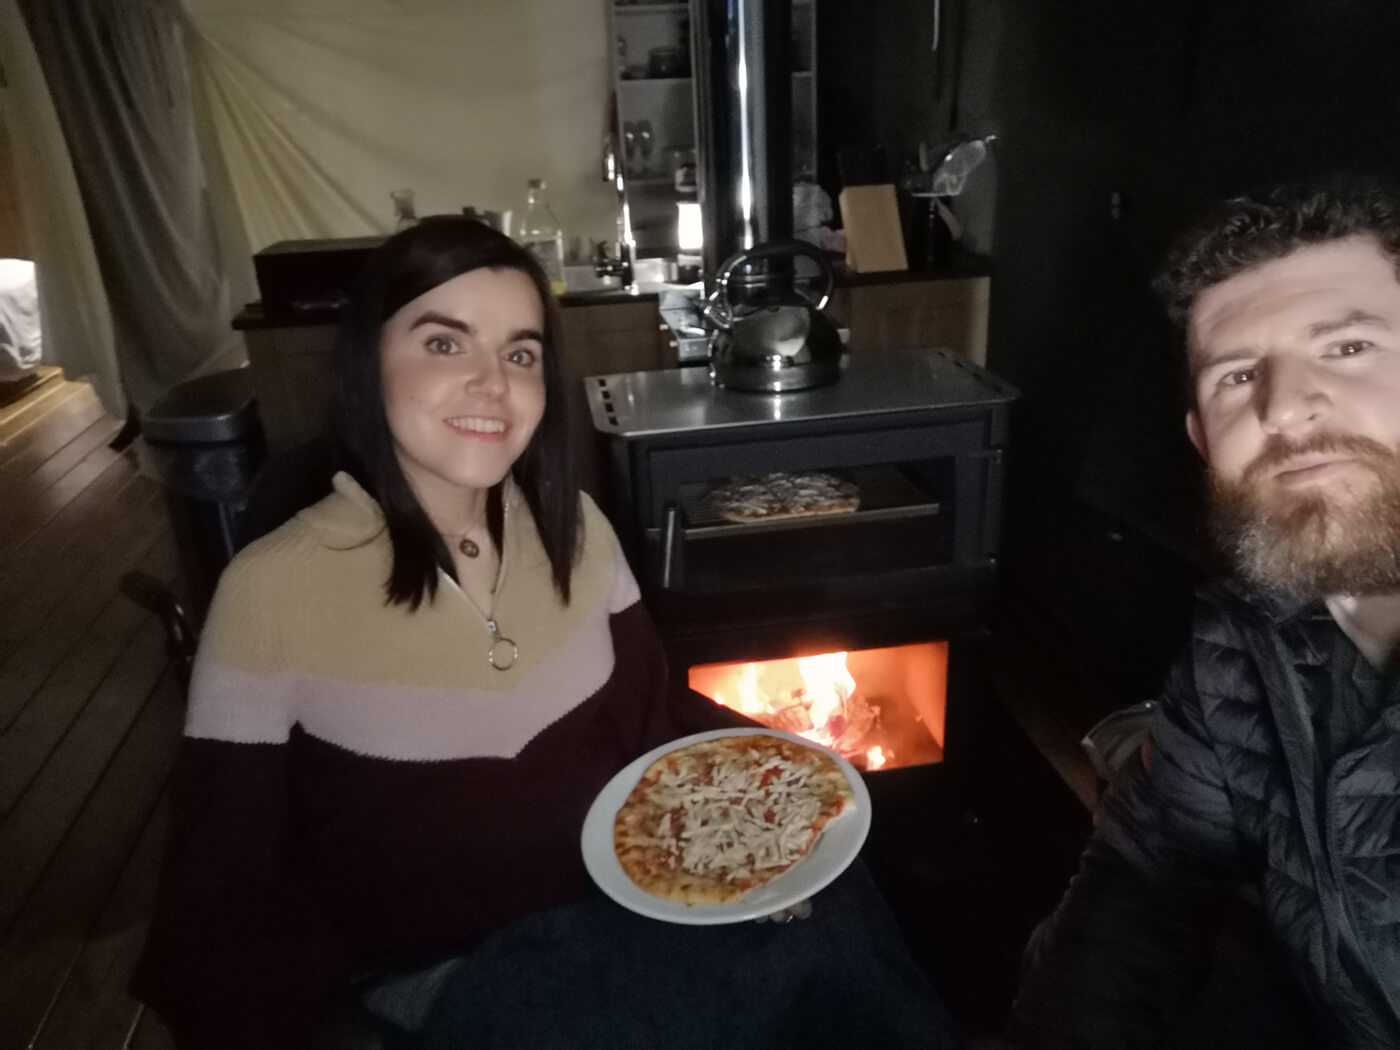 Emma and Allan sitting next to the log burner holding a plate with a freshly baked pizza.